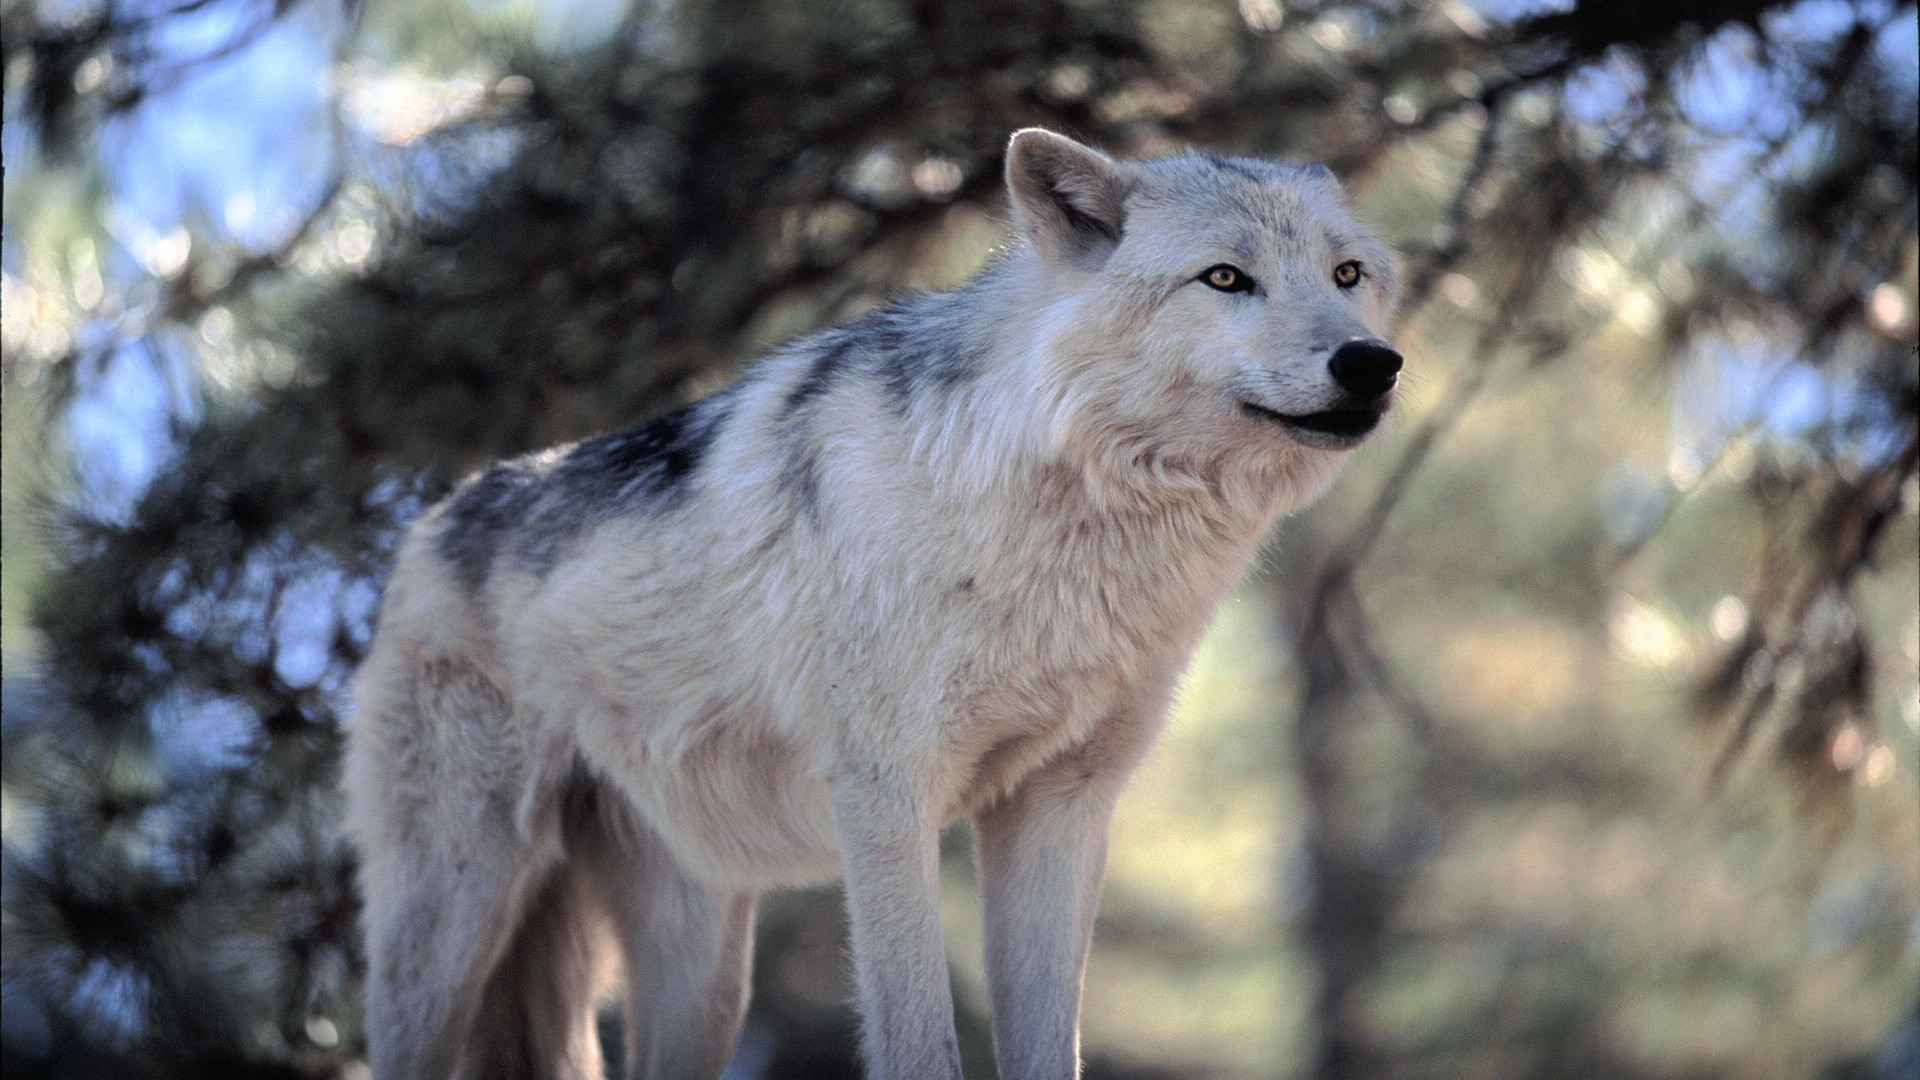 Wolf Natural Awesome HD view White wolves in wildlife sanctuary natural HD  Image shot